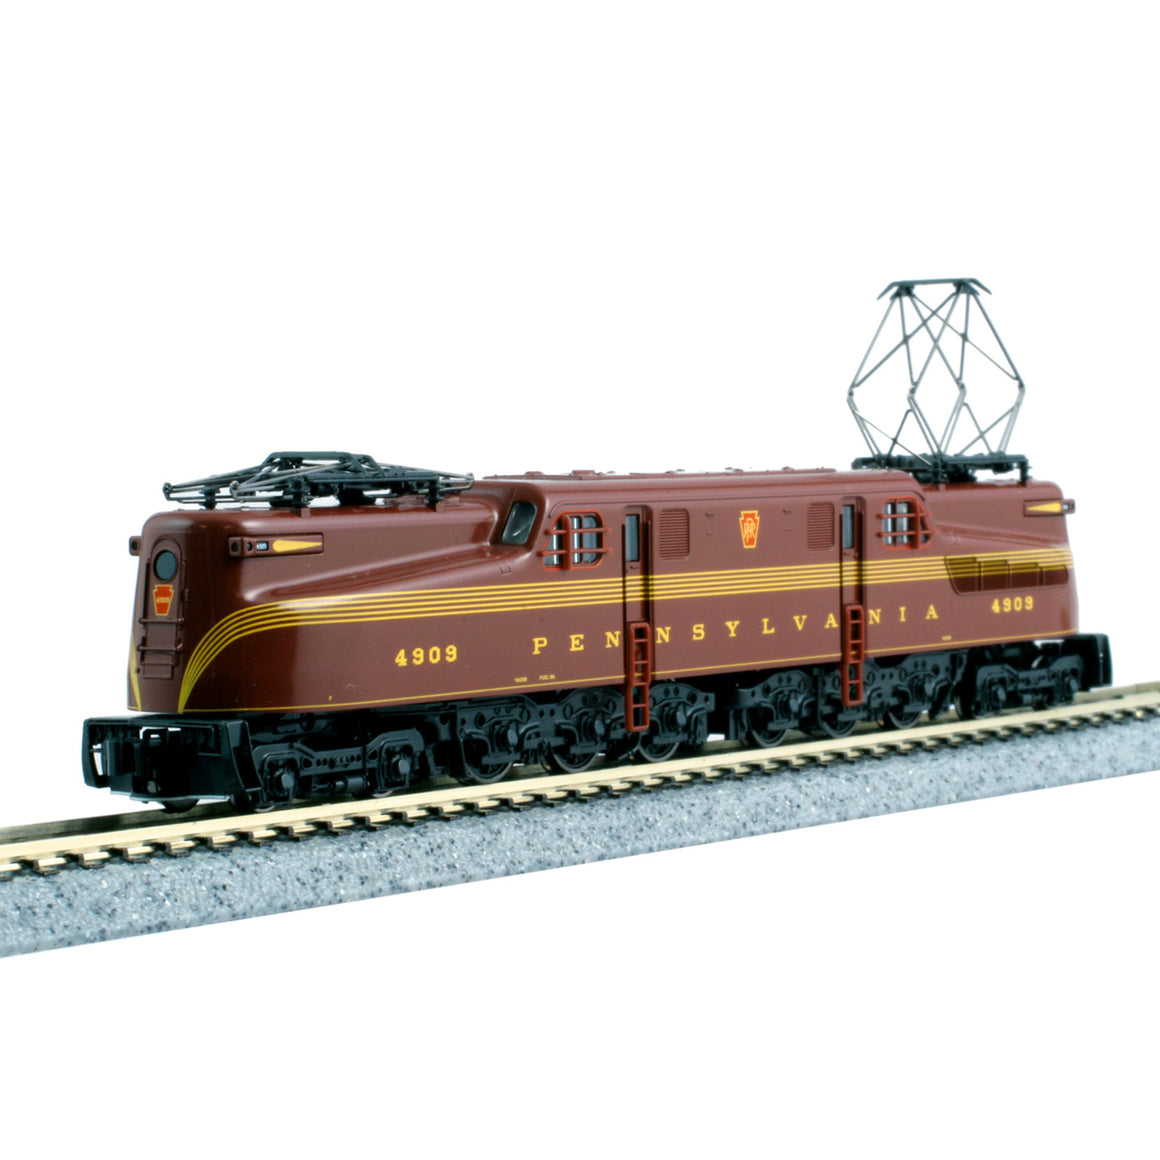 N Scale: GG1 Electric - DCC-Ready - PRR Tuscan Red